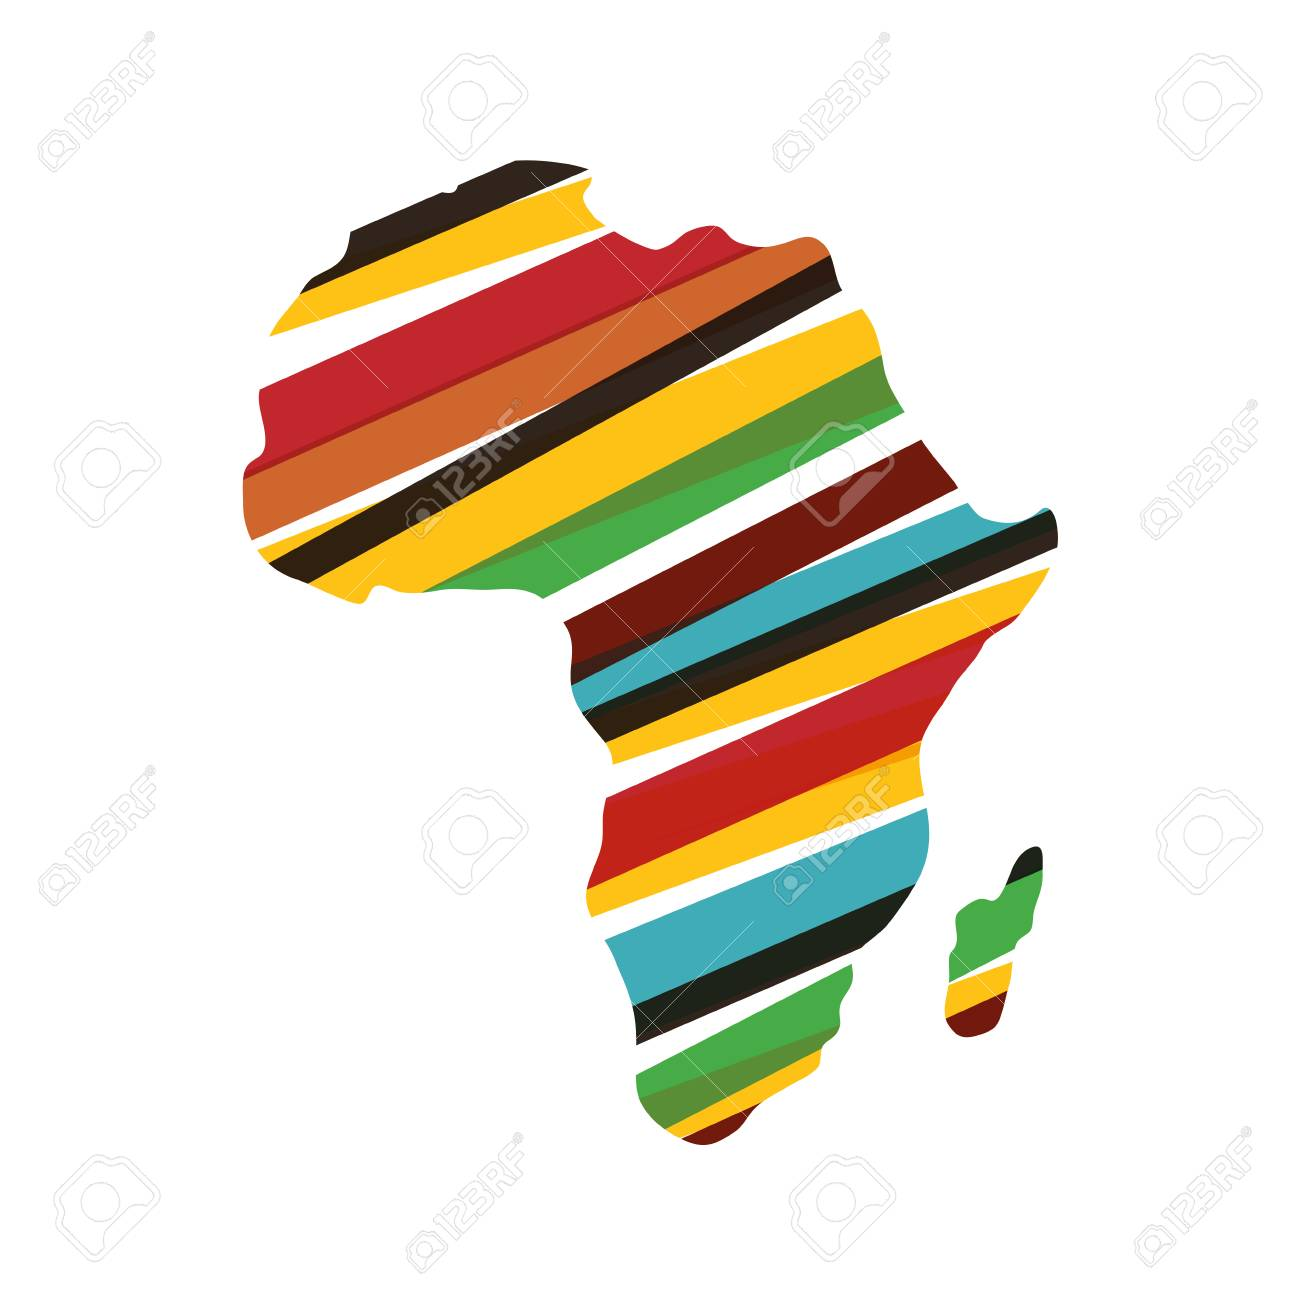 Africa Map Horn Of Africa%0A Africa Map Clipart Africa map silhouette icon vector illustration graphic  design